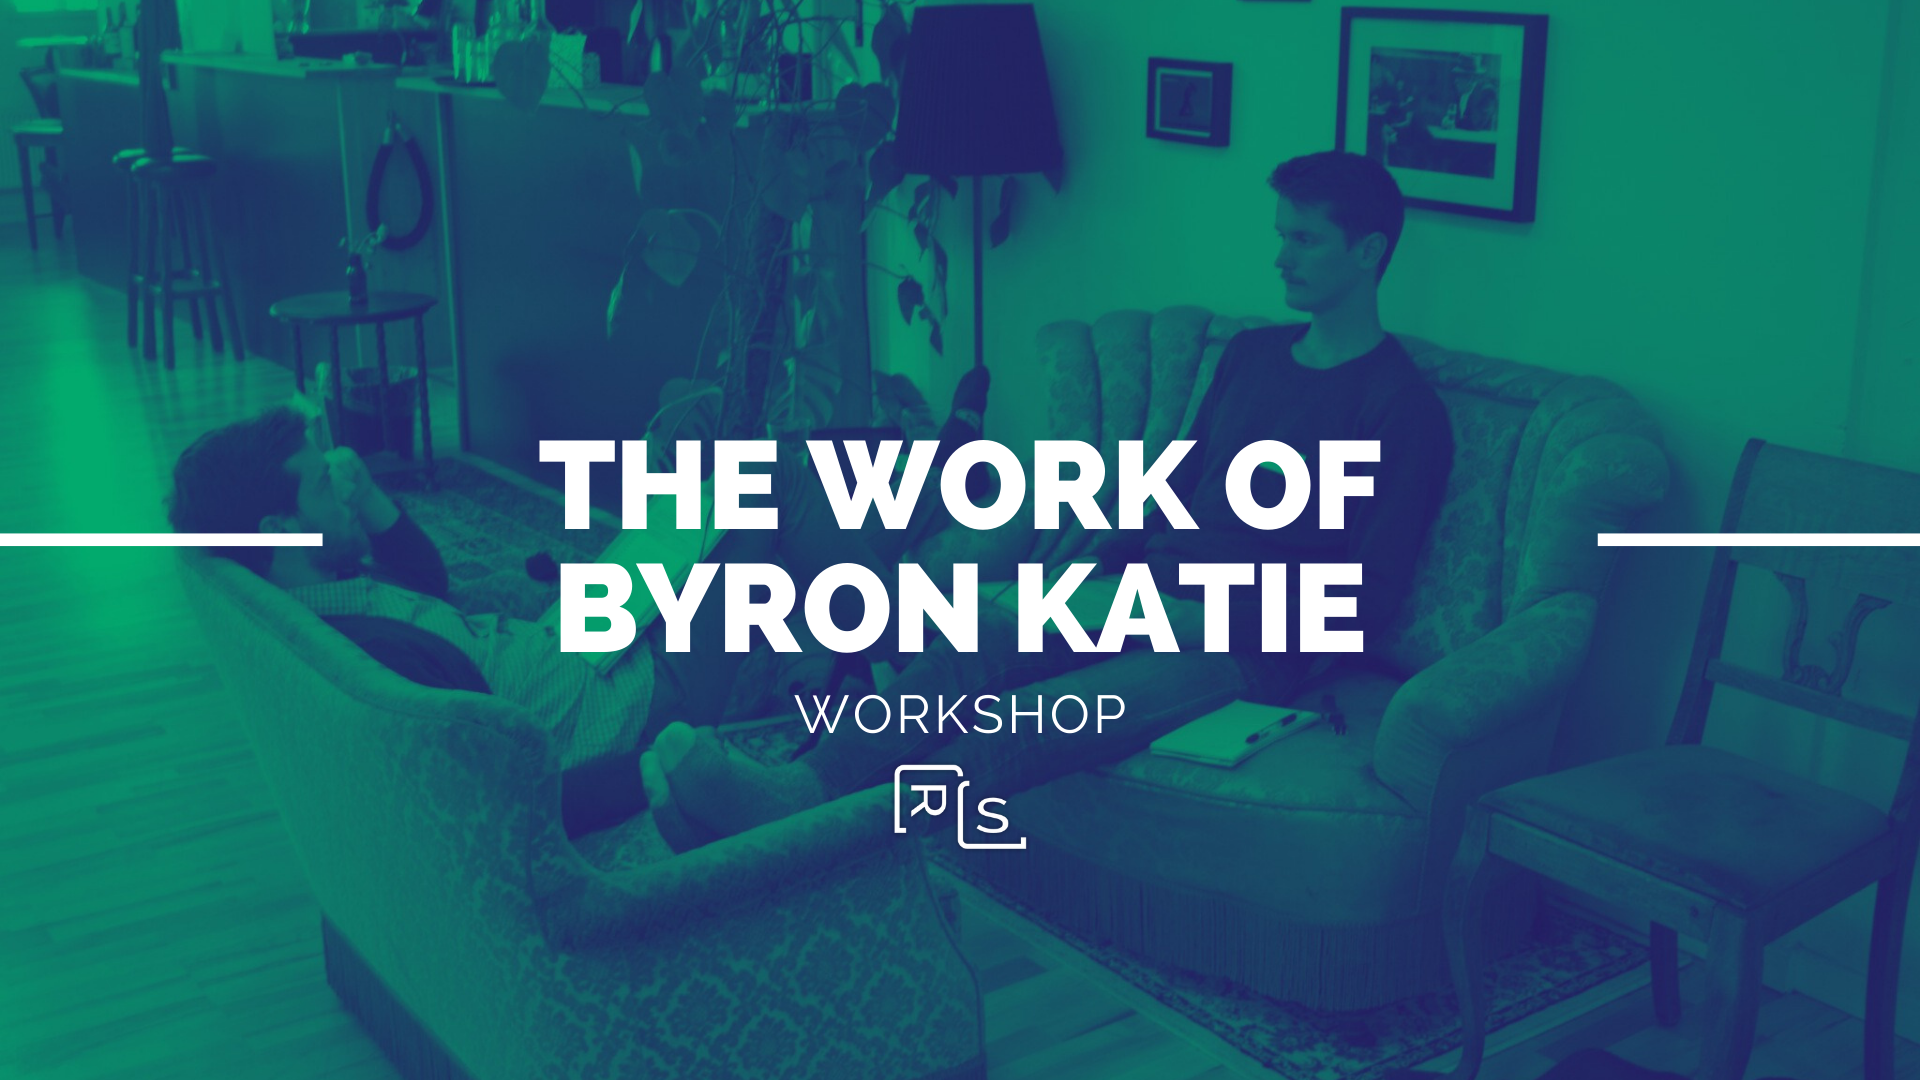 The Work of Byron Katie Workshop